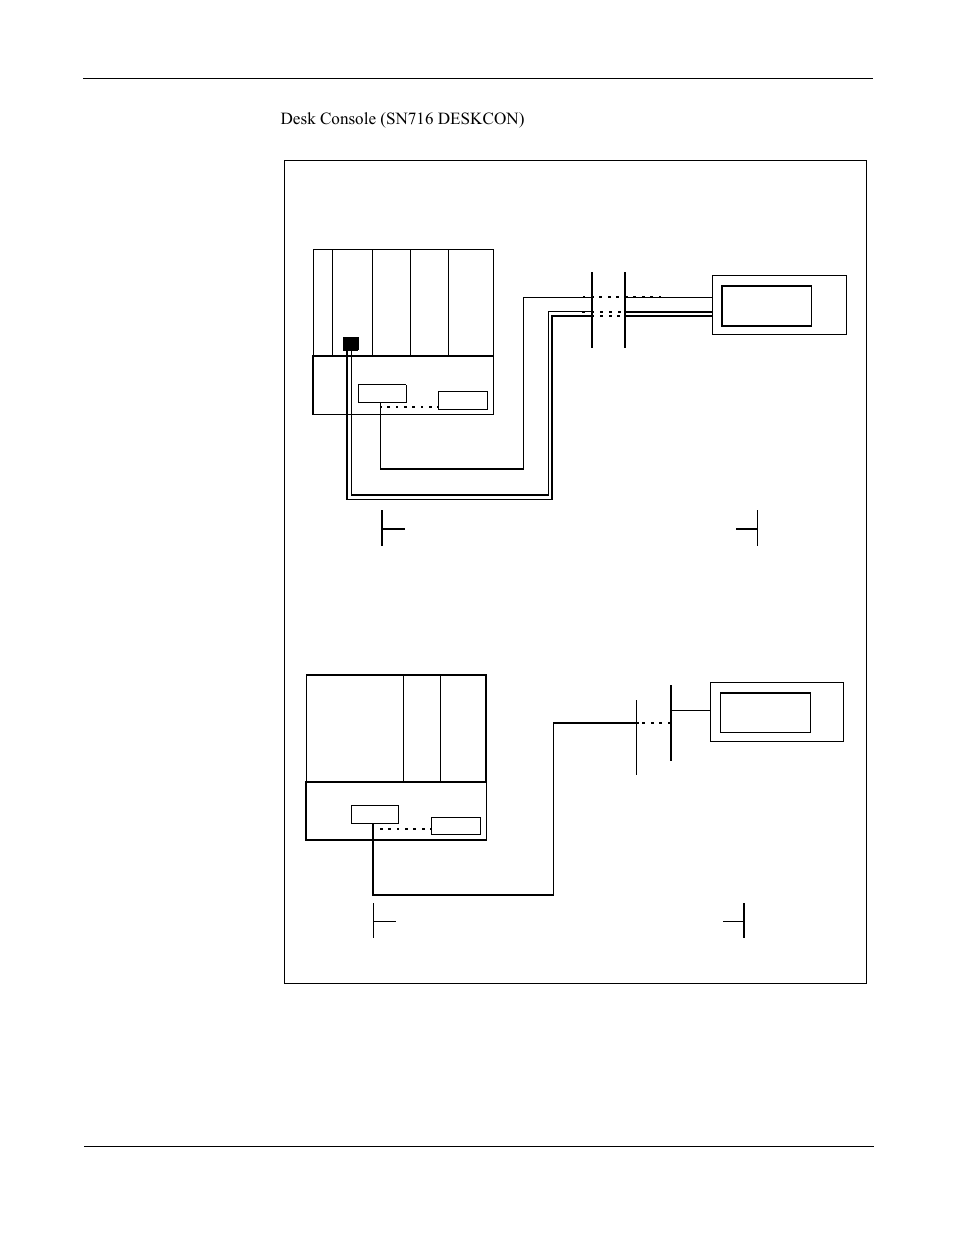 Attendant Console Figure 6 7 Cable Connection Rollover Diagram Nec Neax 2000 Ips User Manual Page 72 96